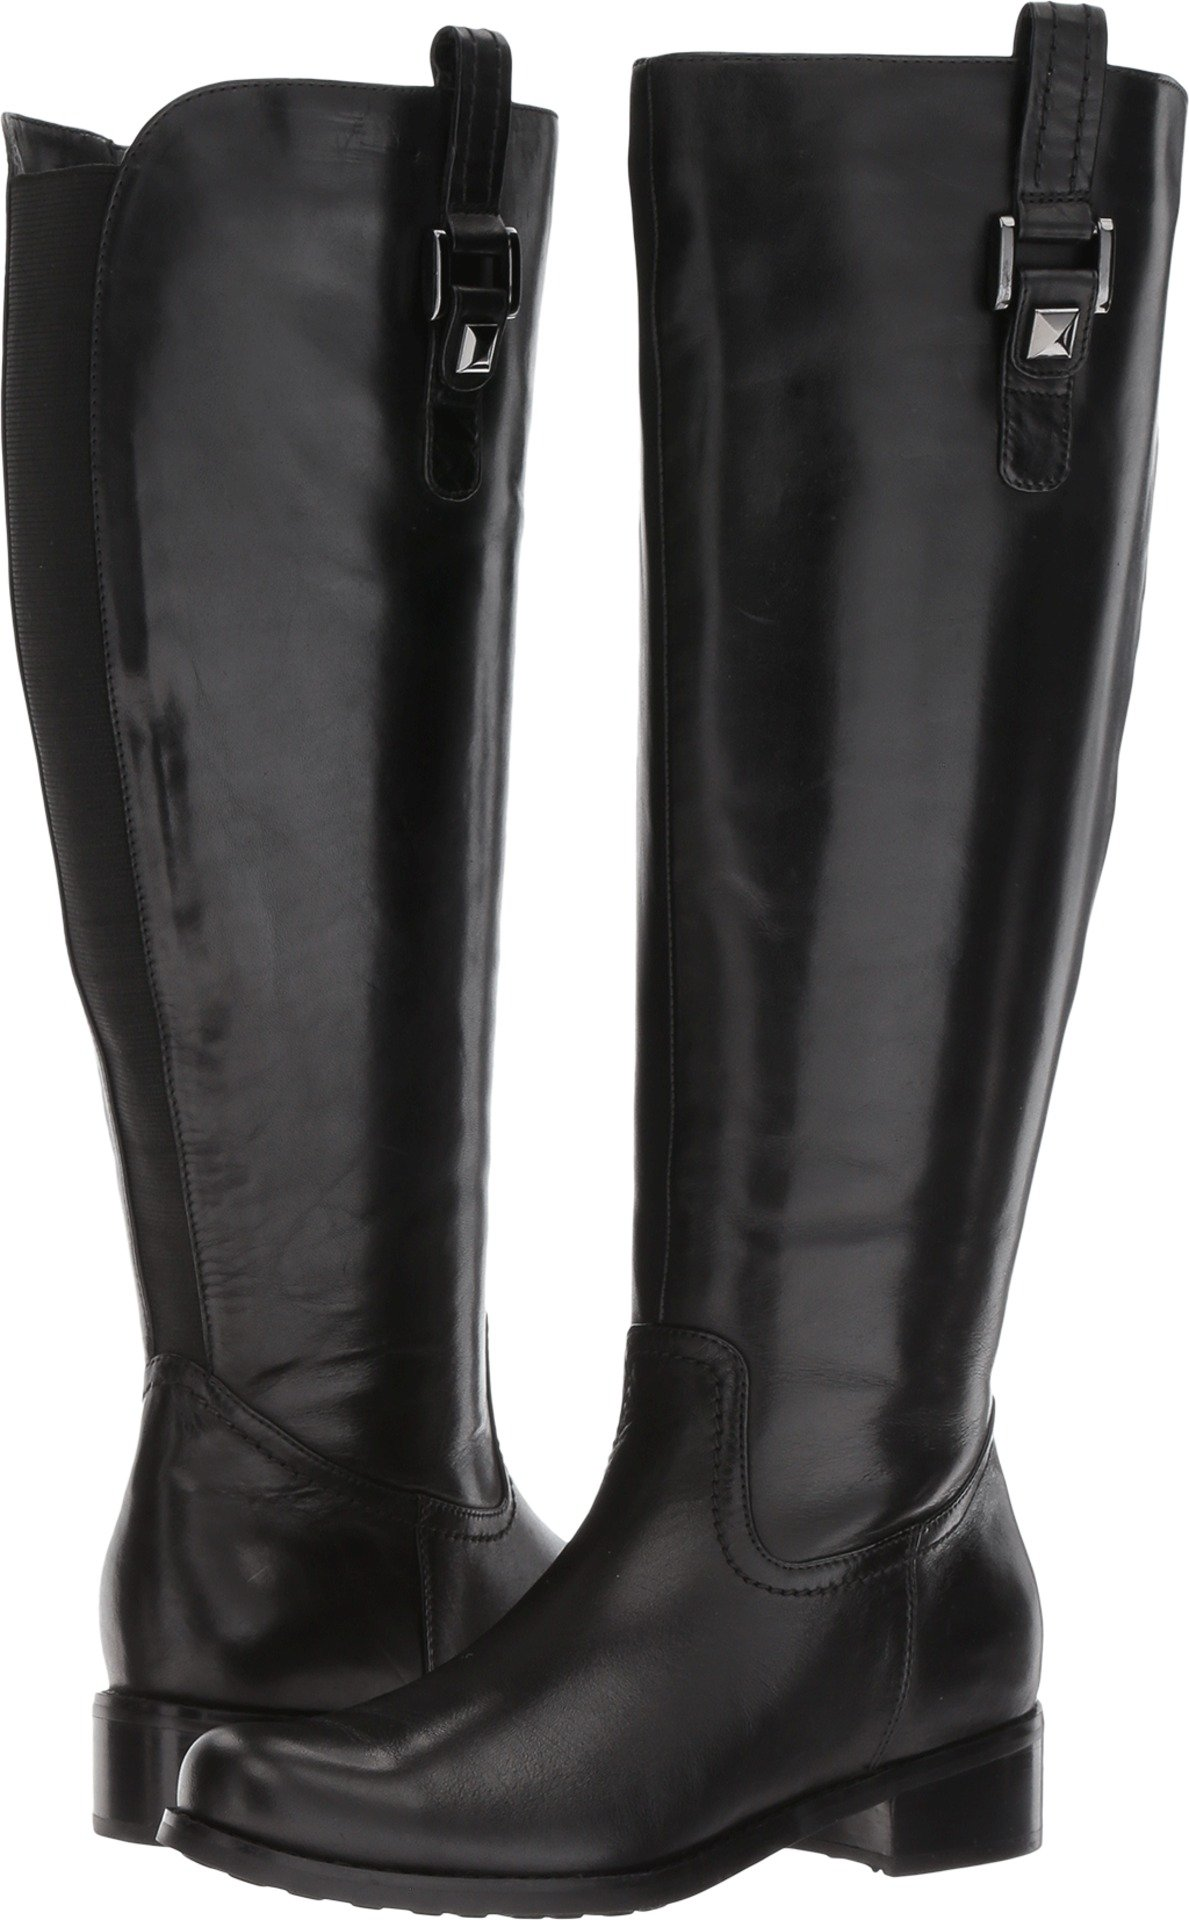 Blondo Women's Velvet Ws Waterproof Riding Boot, Black, 6.5 M US